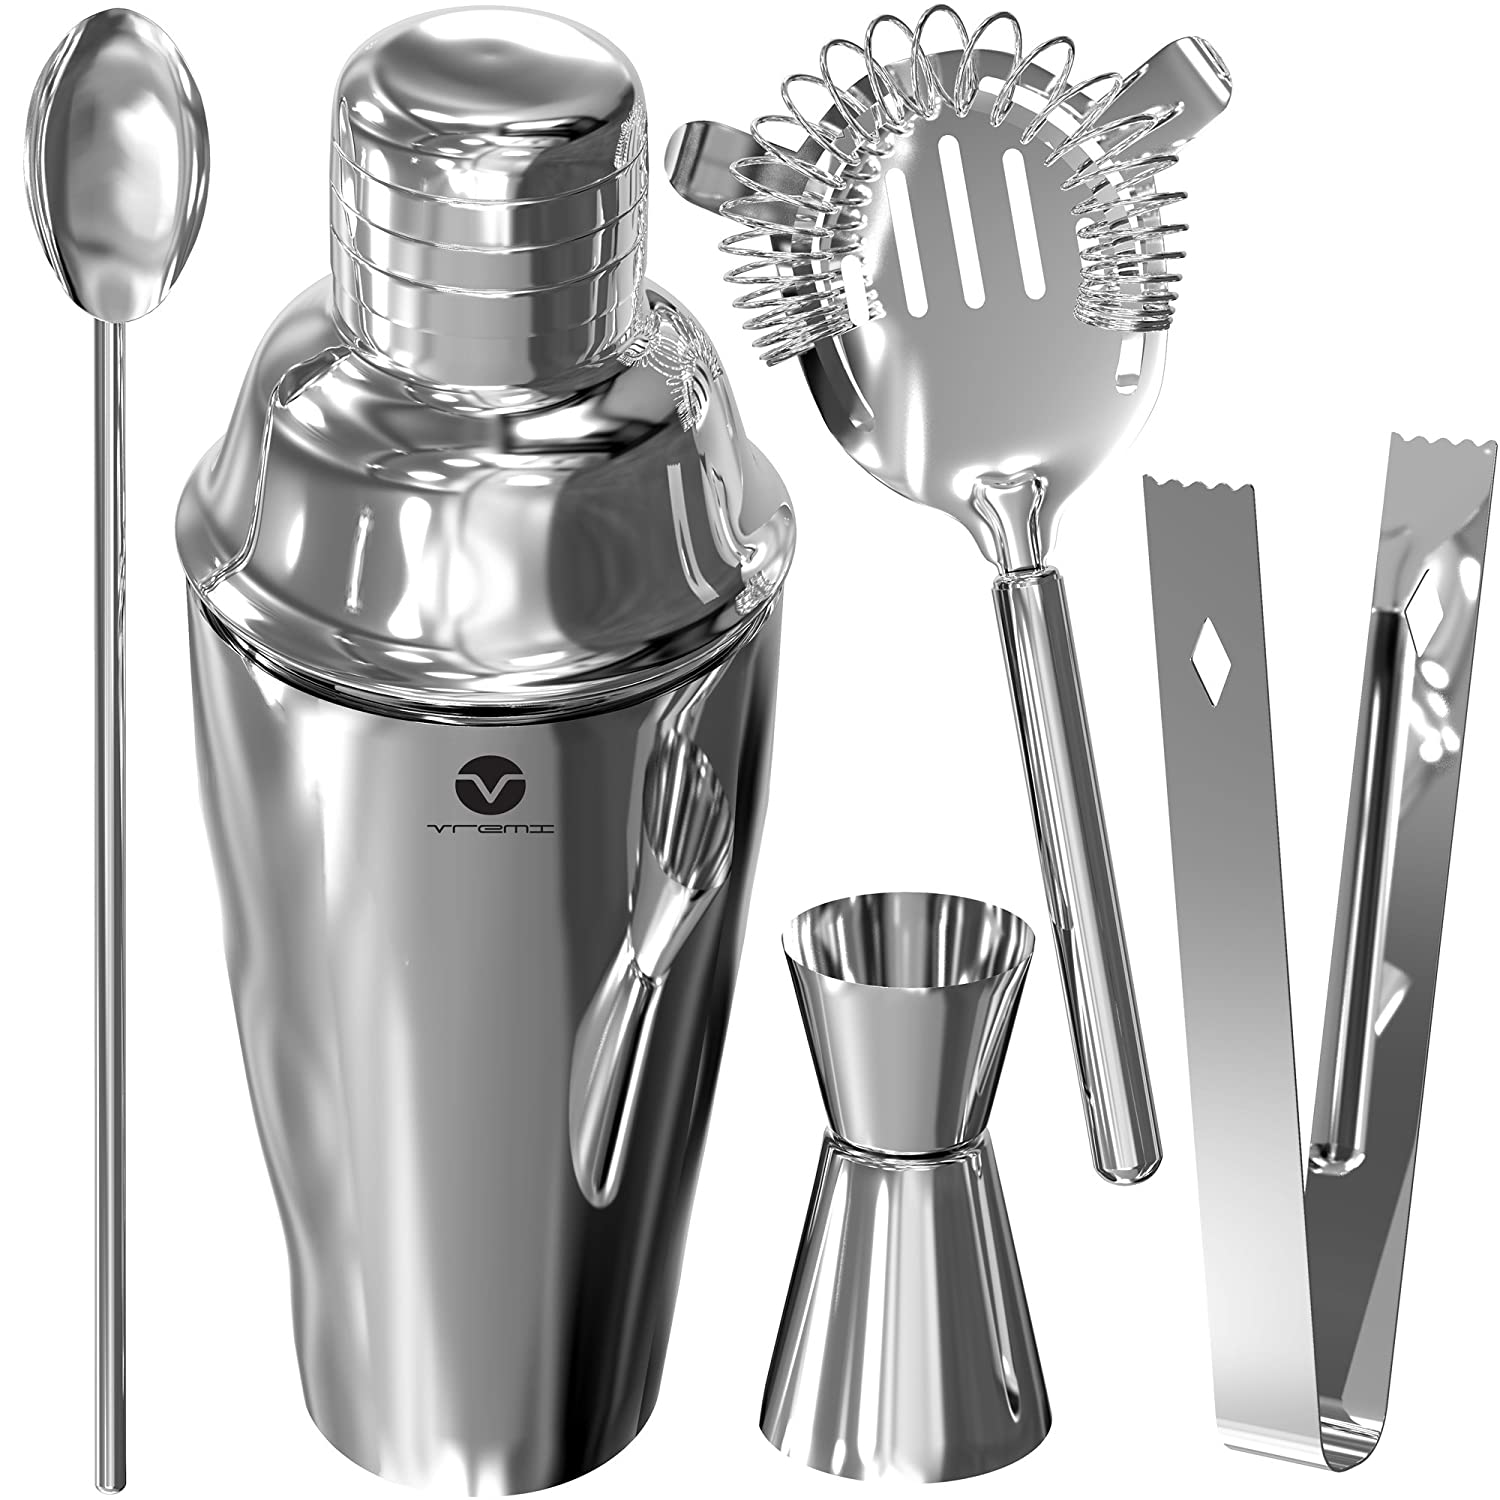 Vremi Stainless Steel Cocktail Shaker Set - 5 Piece Bartender Kit with Martini Shaker Strainer Jigger Shot Glass Stirring Spoon - Bartending Supplies Bar Tools Barware and Bartender Gifts Set - Silver VRM020028N